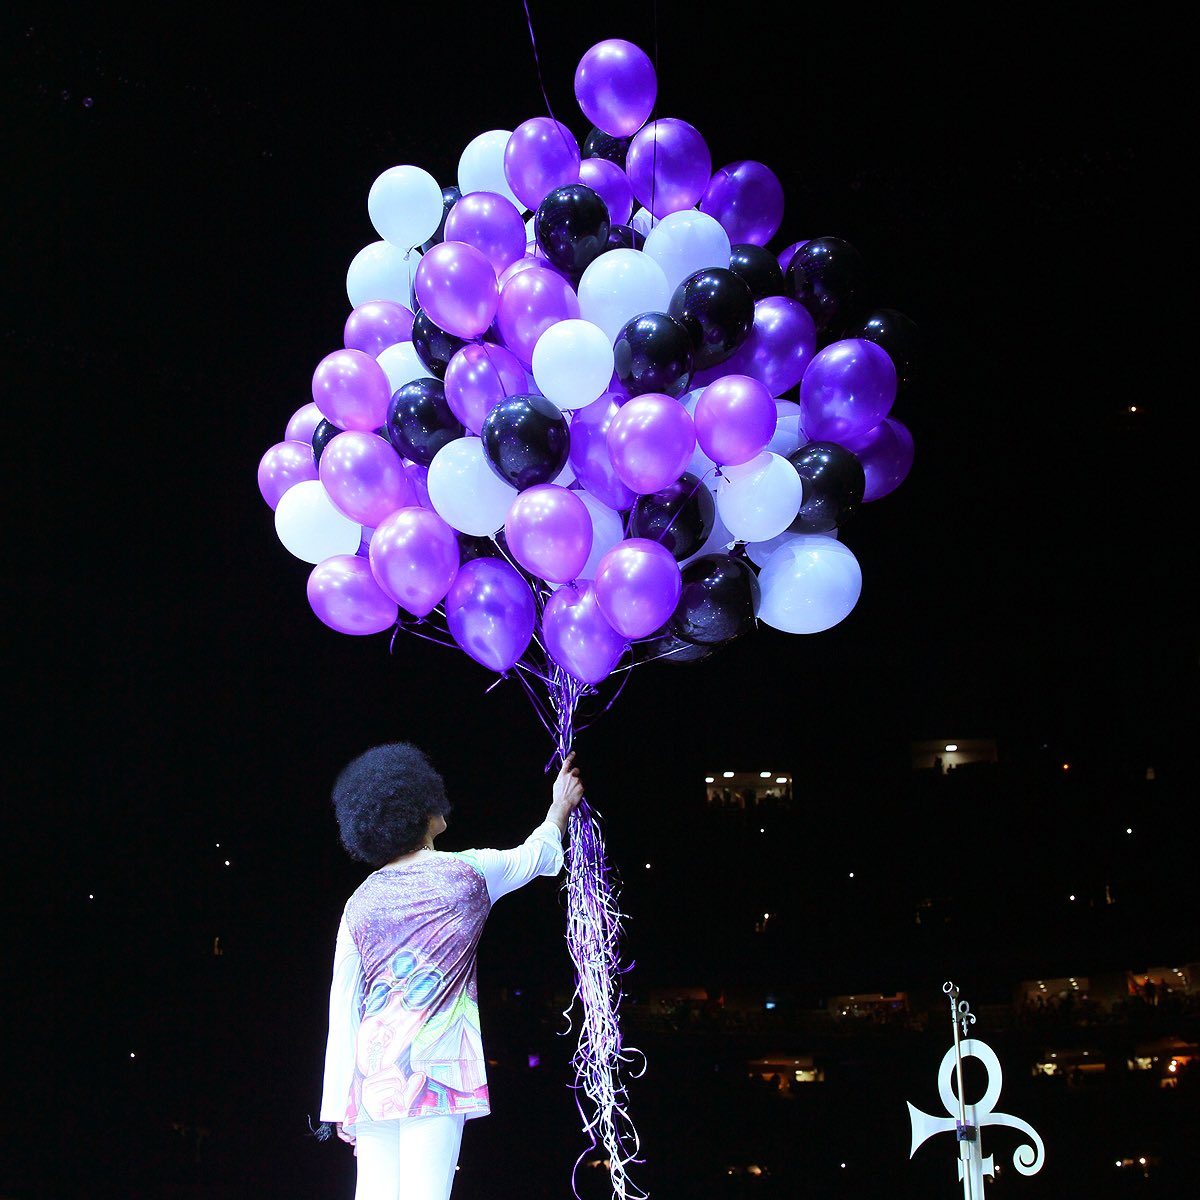 Celebrate Prince's life and legacy this weekend with one of his favorite DJs, Lenka Paris, spinning live from @PaisleyPark. Fans can tune into this exclusive party from anywhere in the world via @TheCurrent at 9 p.m. CDT tonight. https://t.co/BEvMNzJm88 https://t.co/HYoVRMRKh0